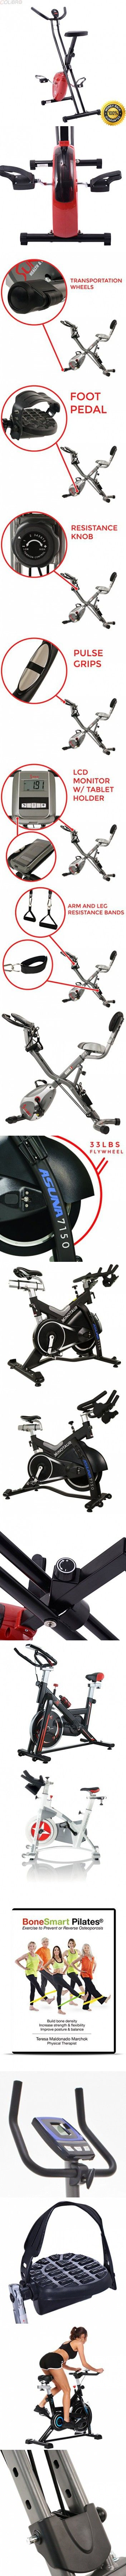 COLIBROX--Folding X-Shape Exercise Bike Cardio Workout Cycling Fitness Stationary. exercise bike cycling indoor. folding electric bike sport mountain bicycle. best stationary bike amazon.